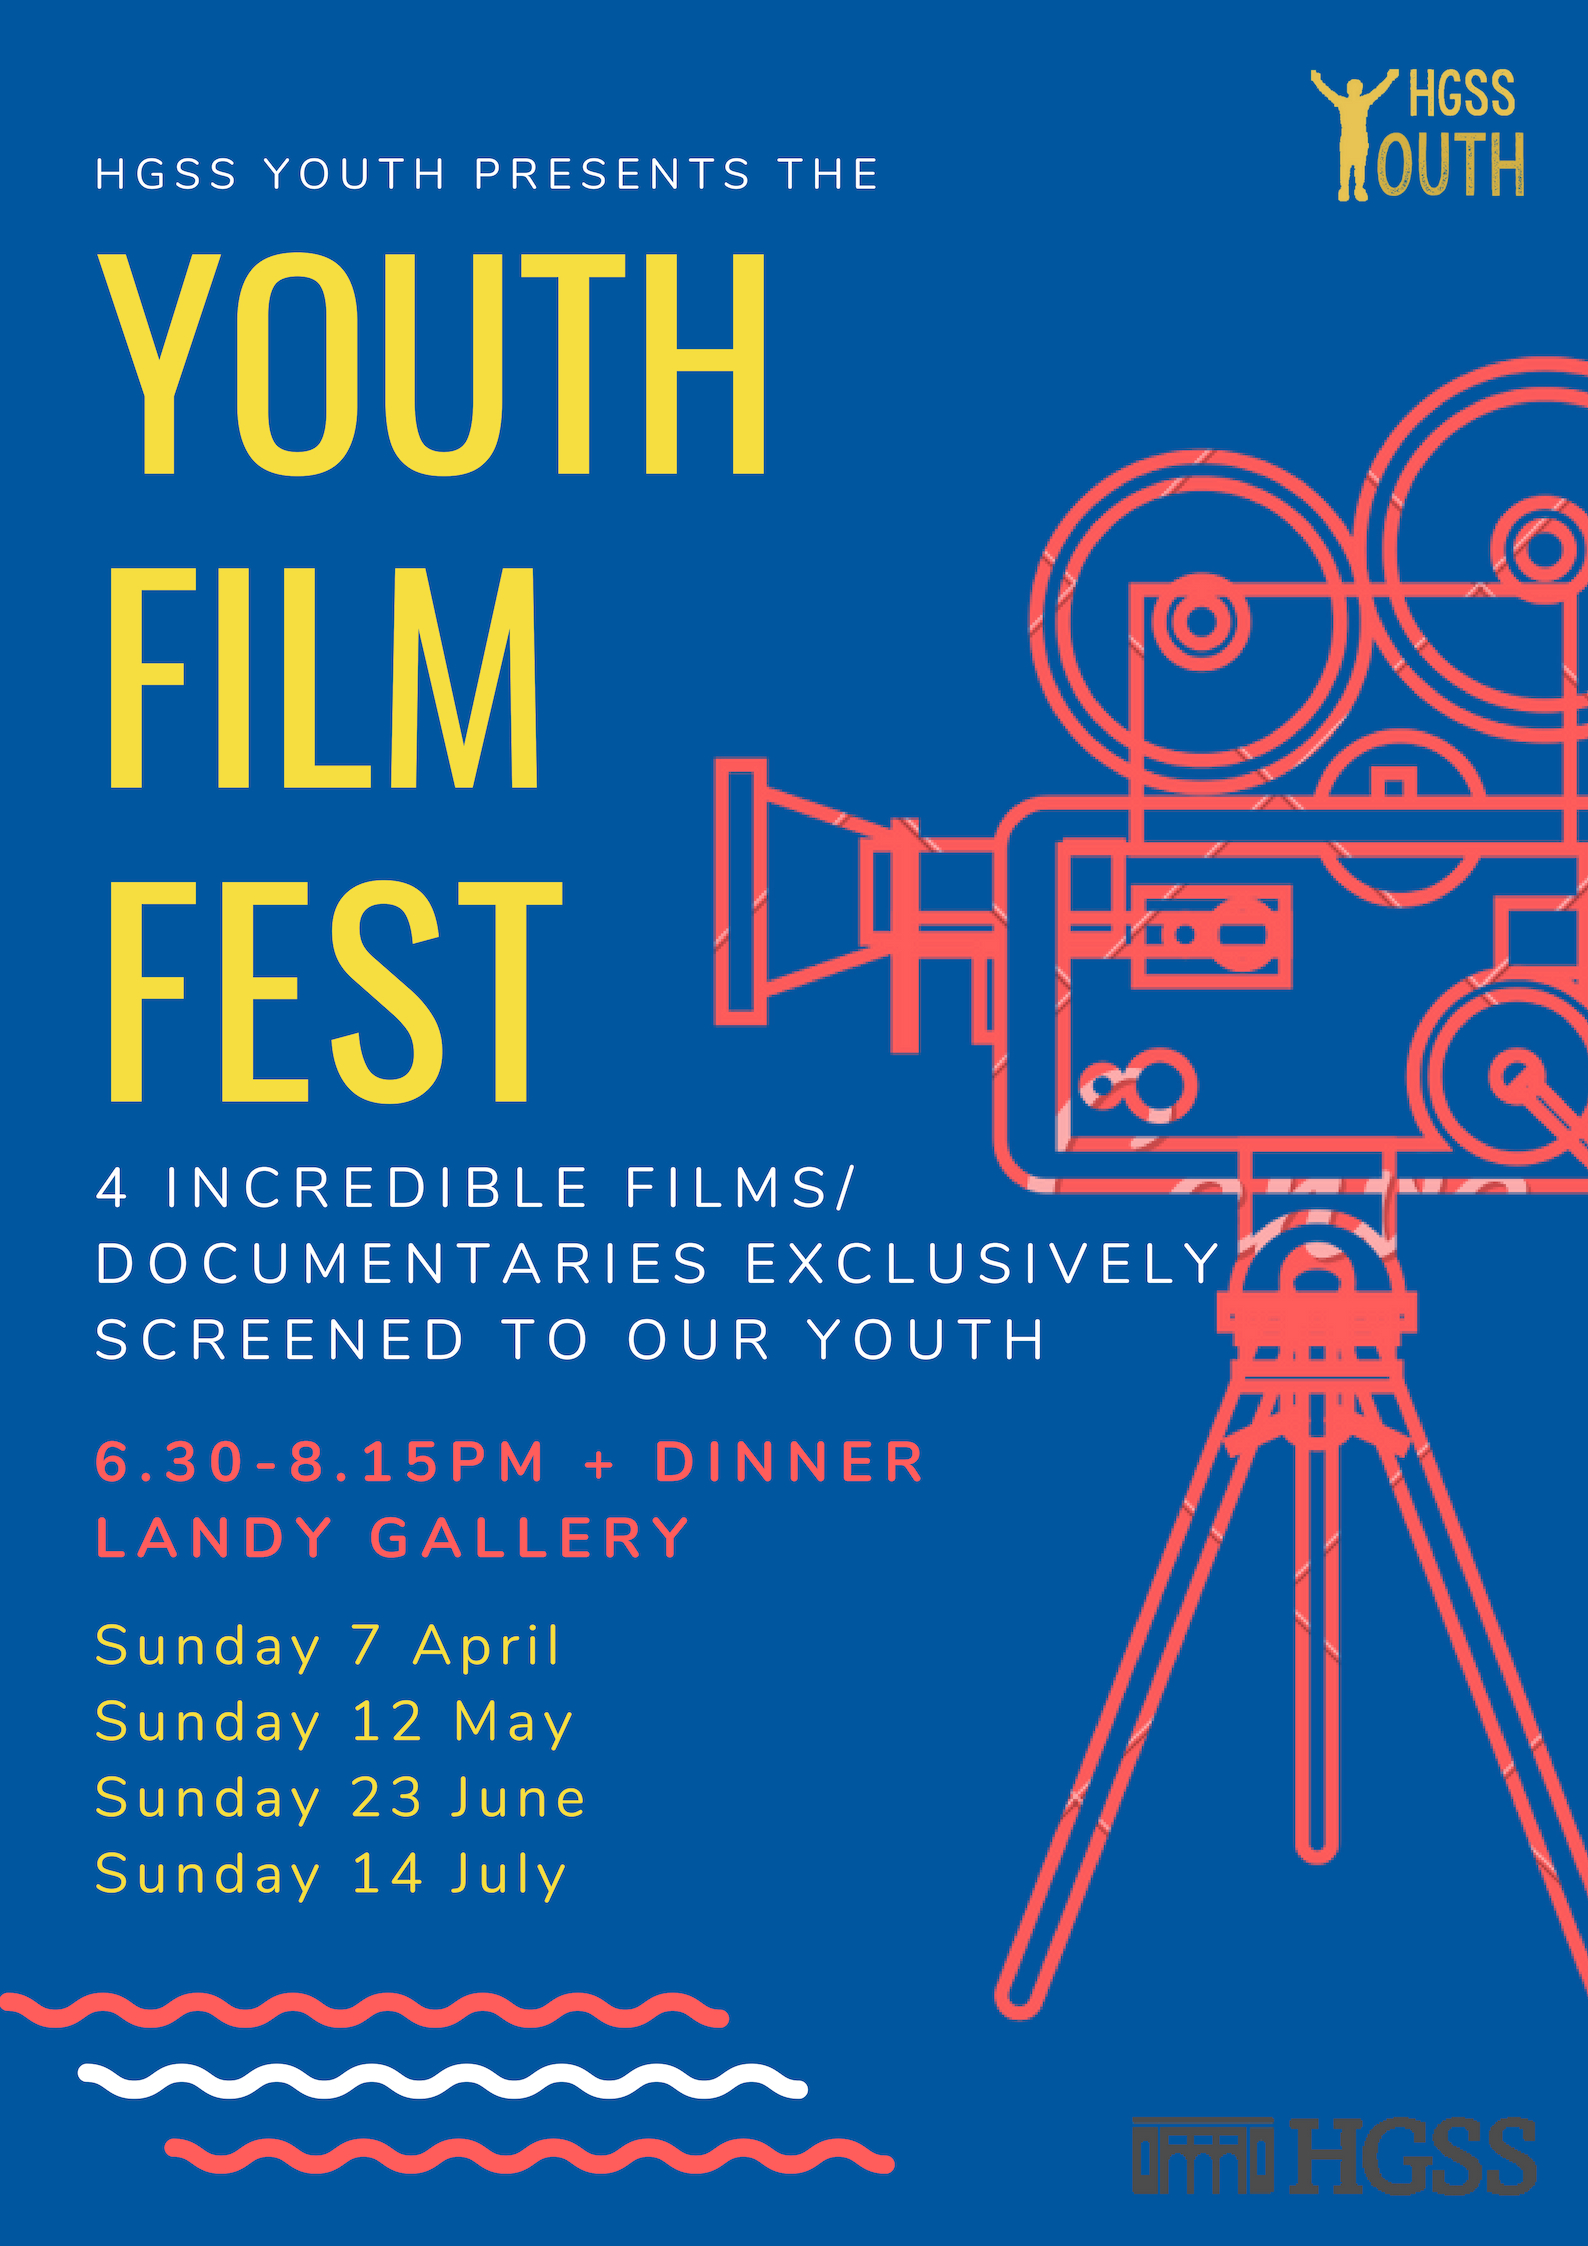 Youth Film Fest @ Landy Gallery